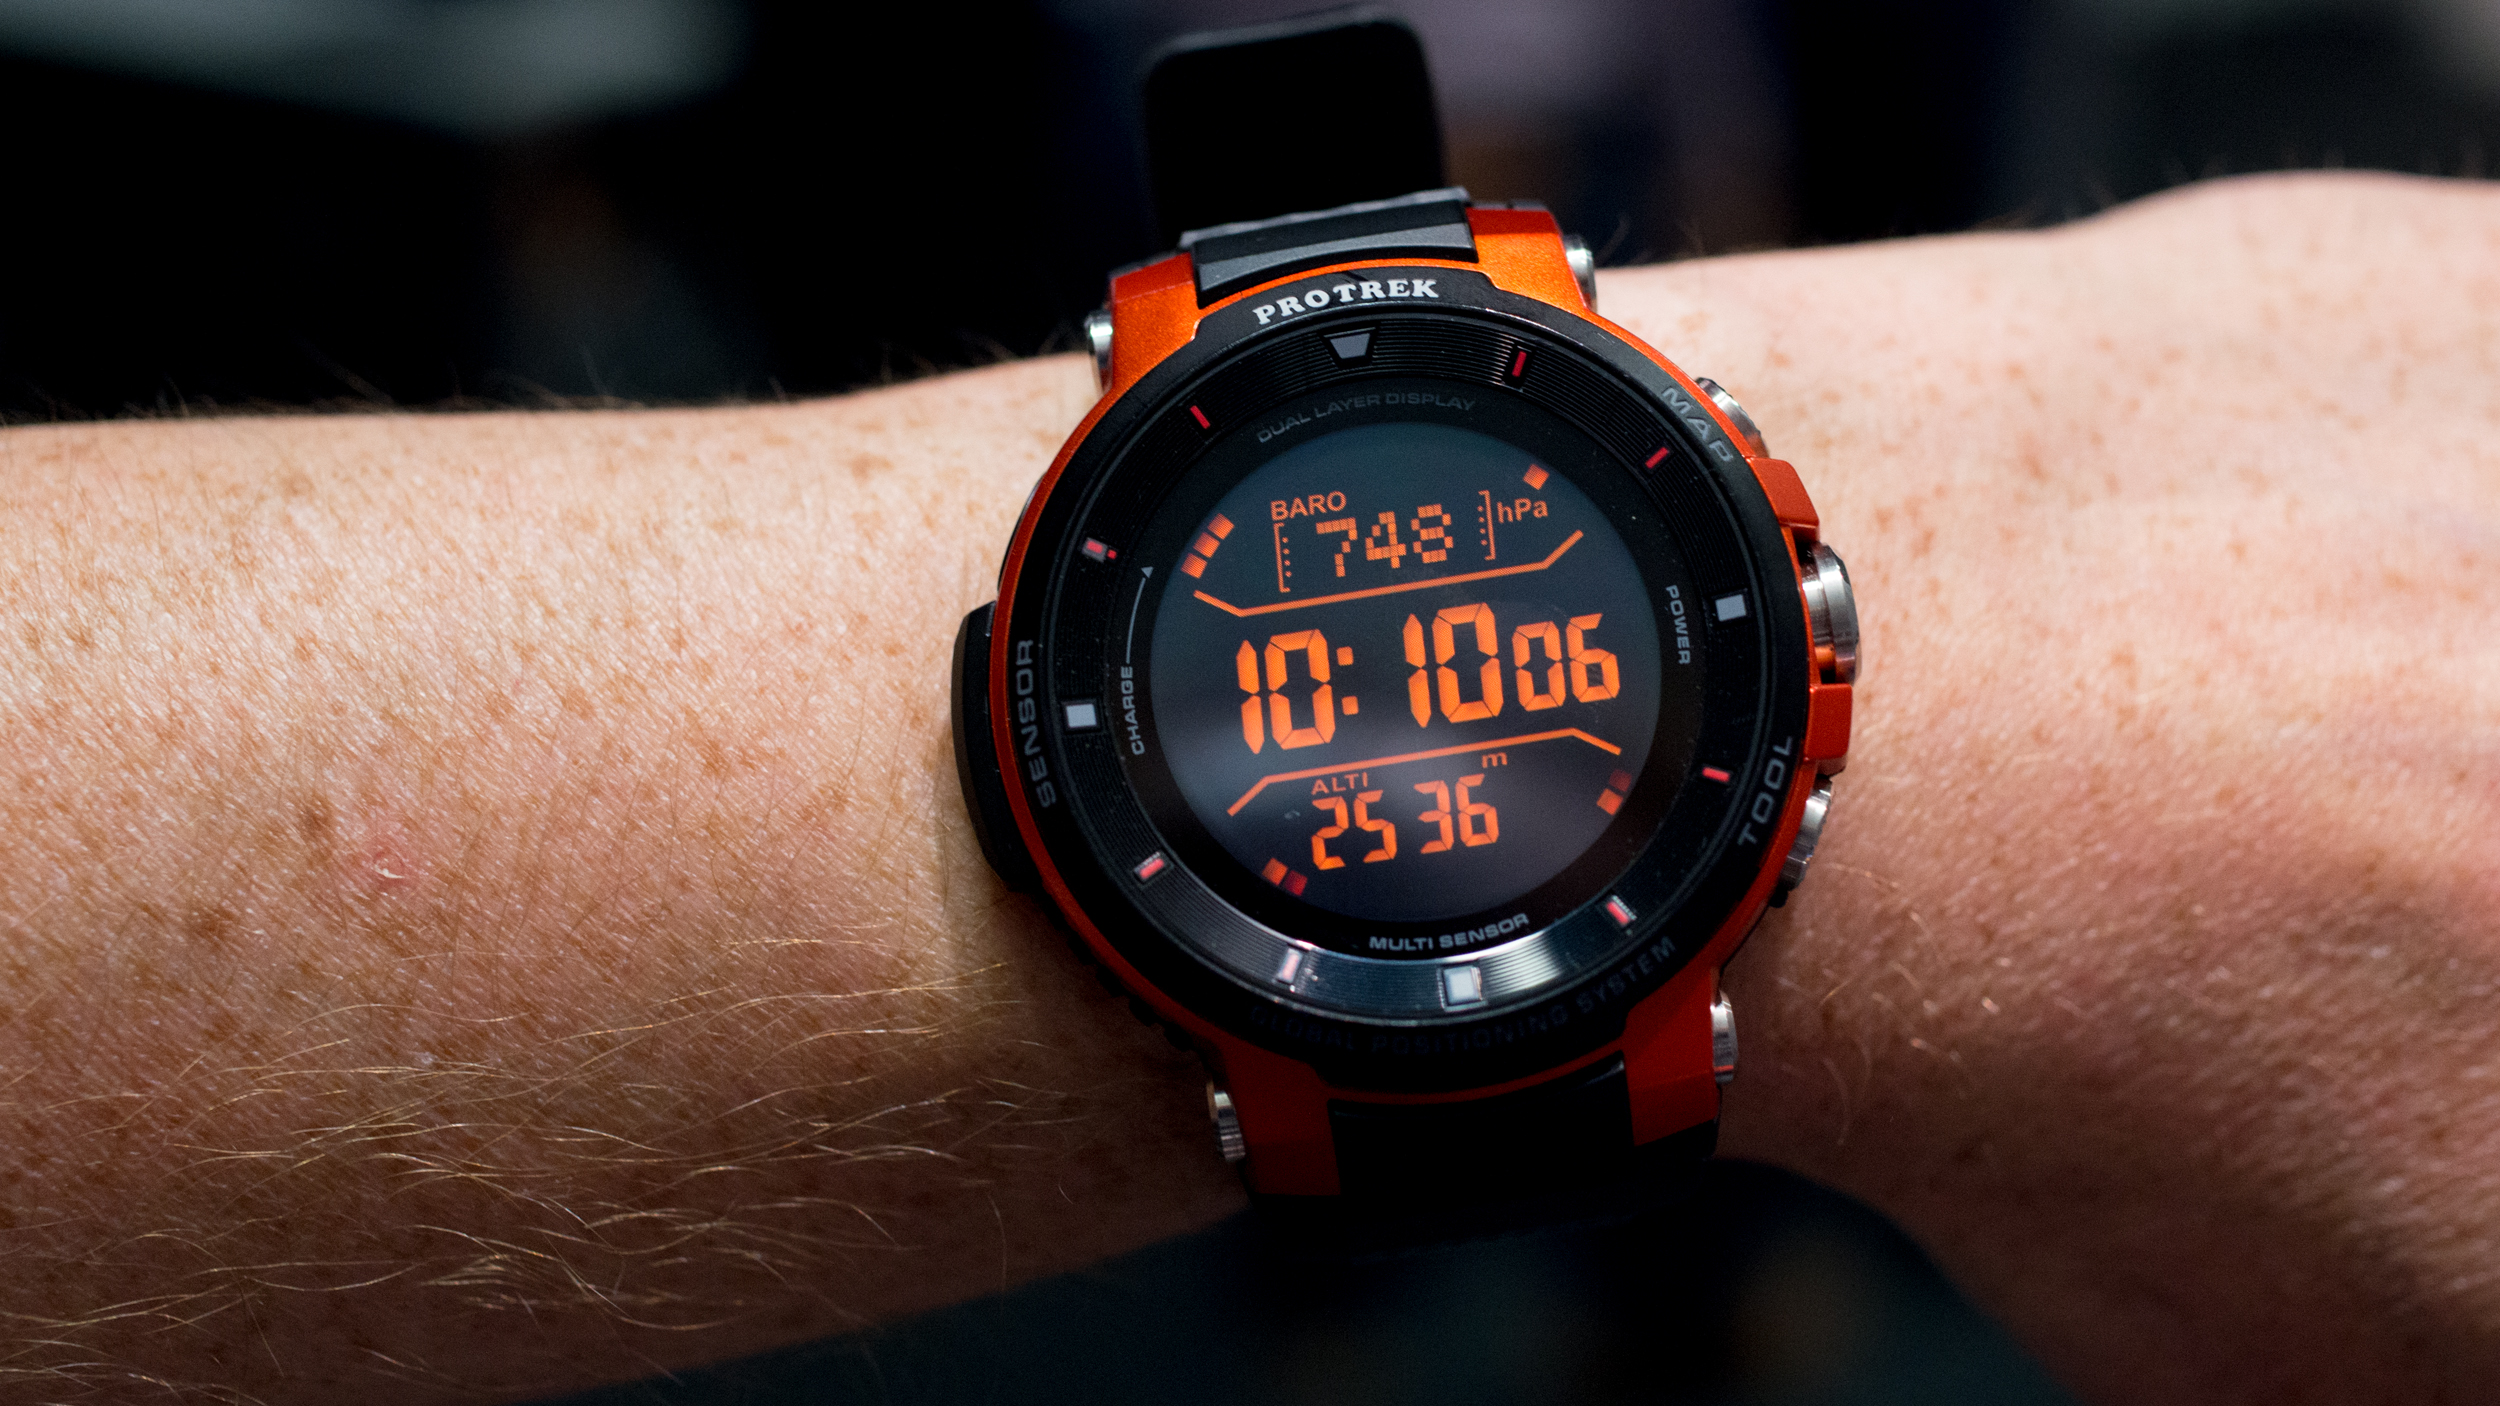 Casio Pro Trek WSD F30 review: Hands on with Casio's tough